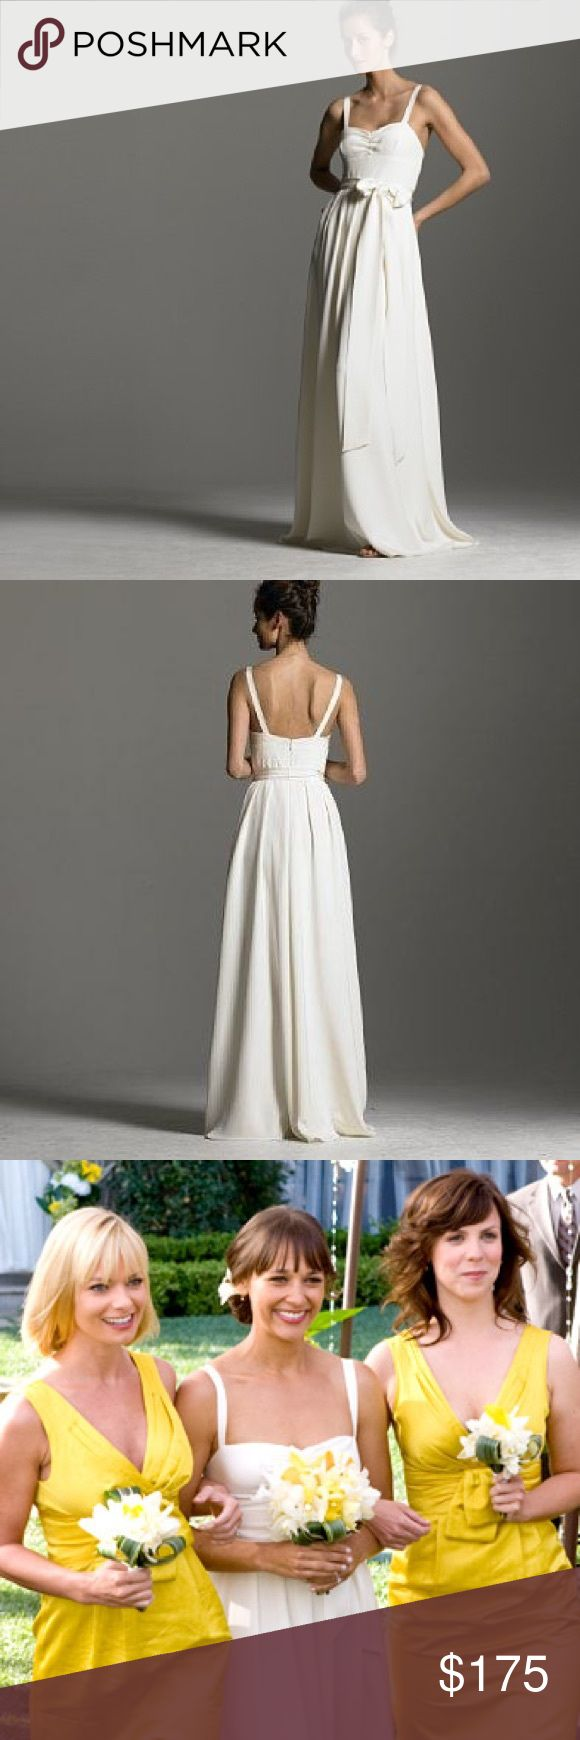 """J. Crew Rebecca Wedding Dress - NWT Brand new simply gorgeous J. Crew Ivory Rebecca Wedding Dress. Have one Size 8 and one Size 10, Silk tricotine. This dress is the same style as the one worn in the movie """"I Love You Man"""". J. Crew Dresses Wedding"""